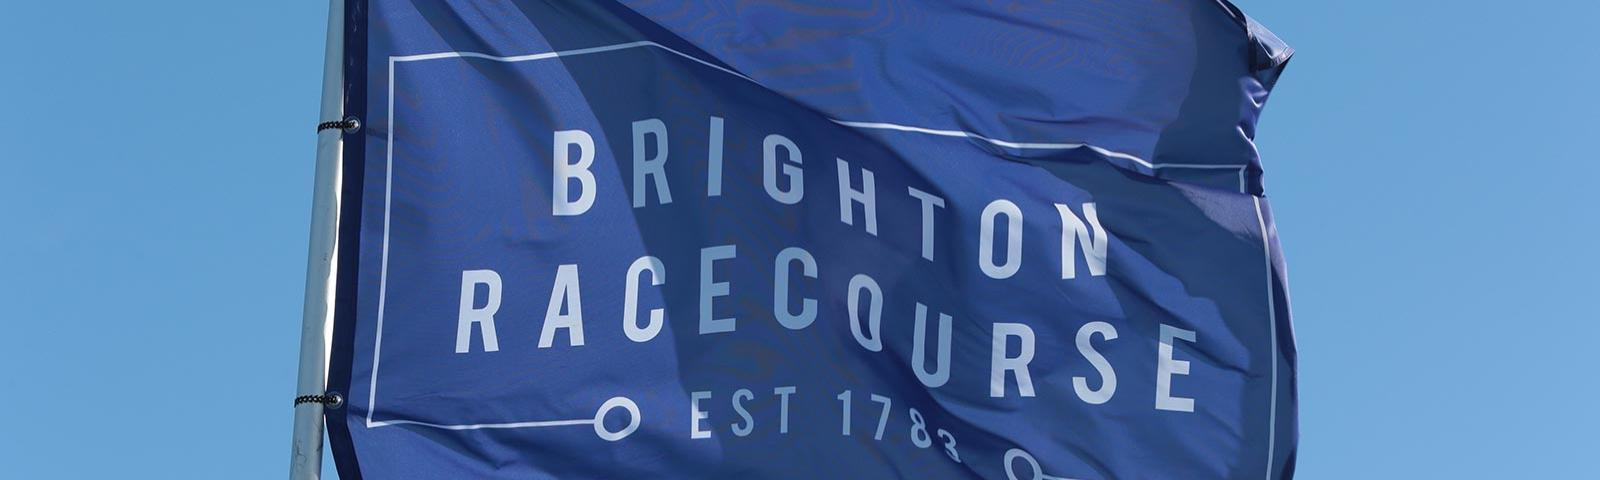 The blue flag of Brighton Racecourse.